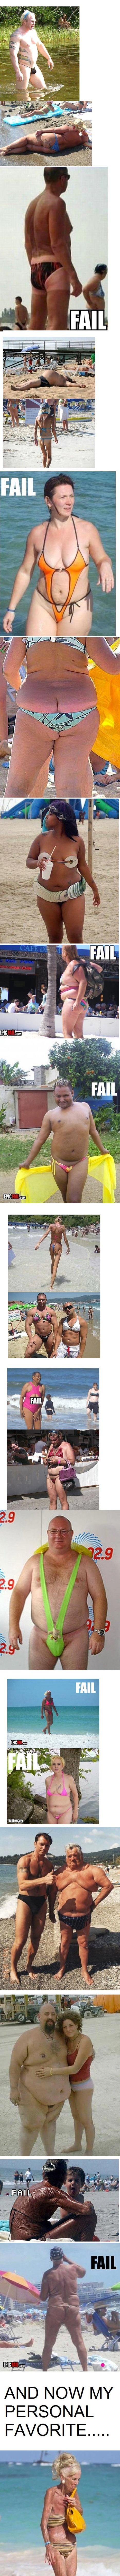 Walmartians at the Beach. Sorry guys.. This is the most disturbing i've seen all day.